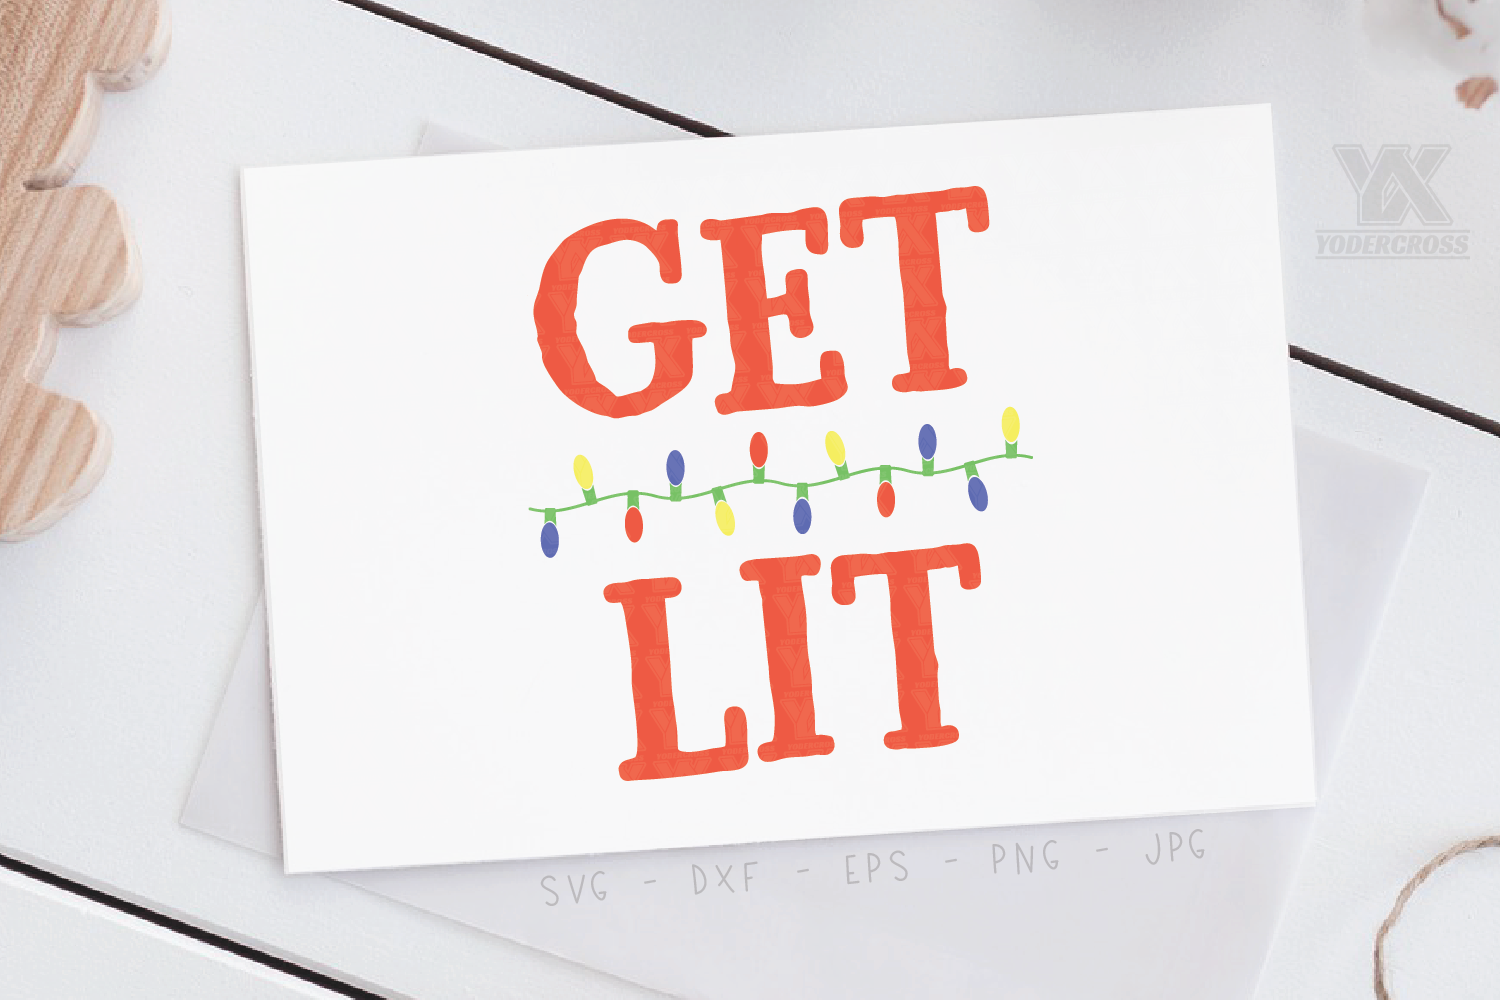 Get Lit Holiday SVG example image 2